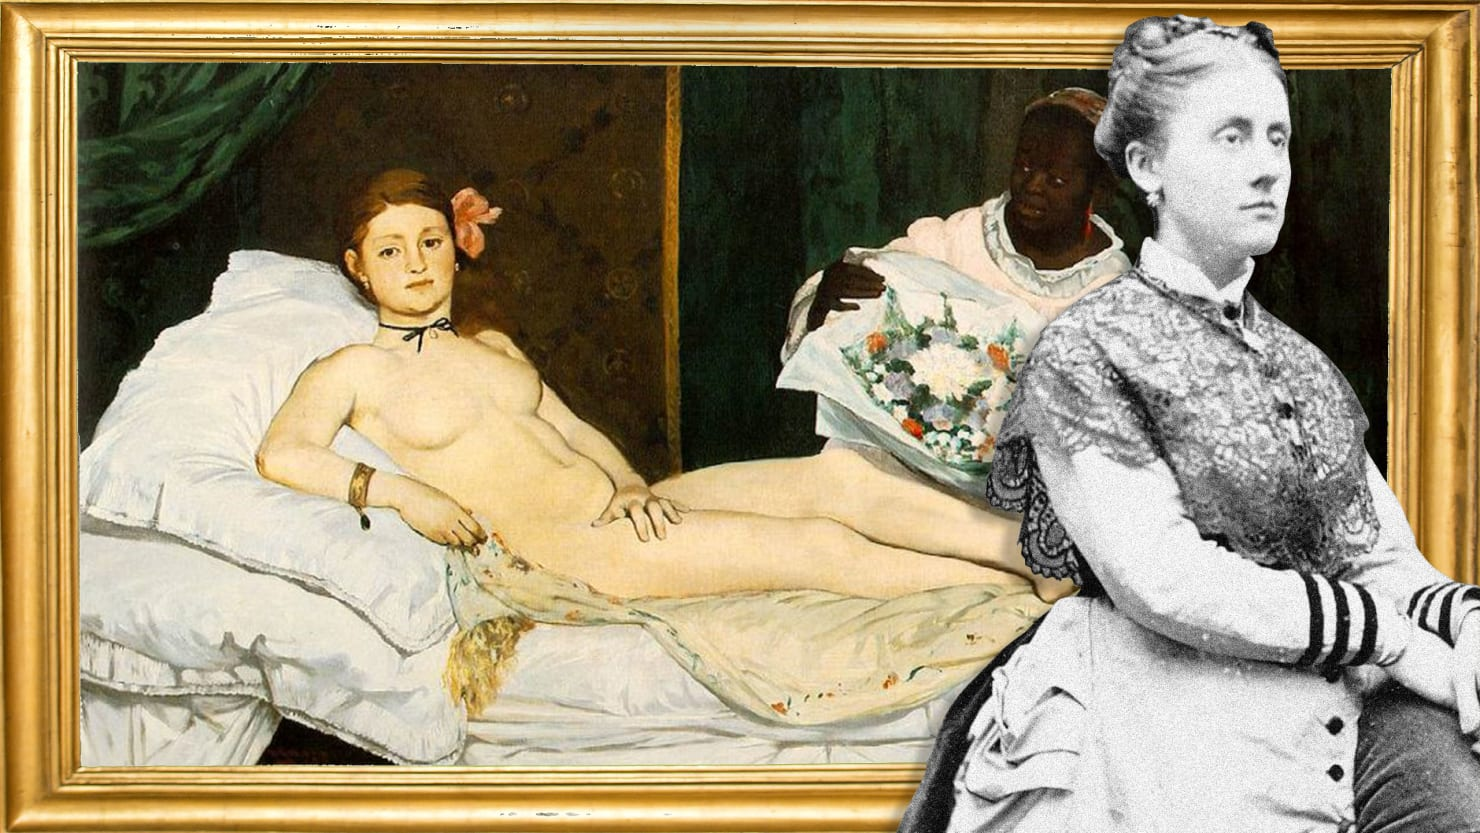 The Naked Truth About Manet's 'Olympia'